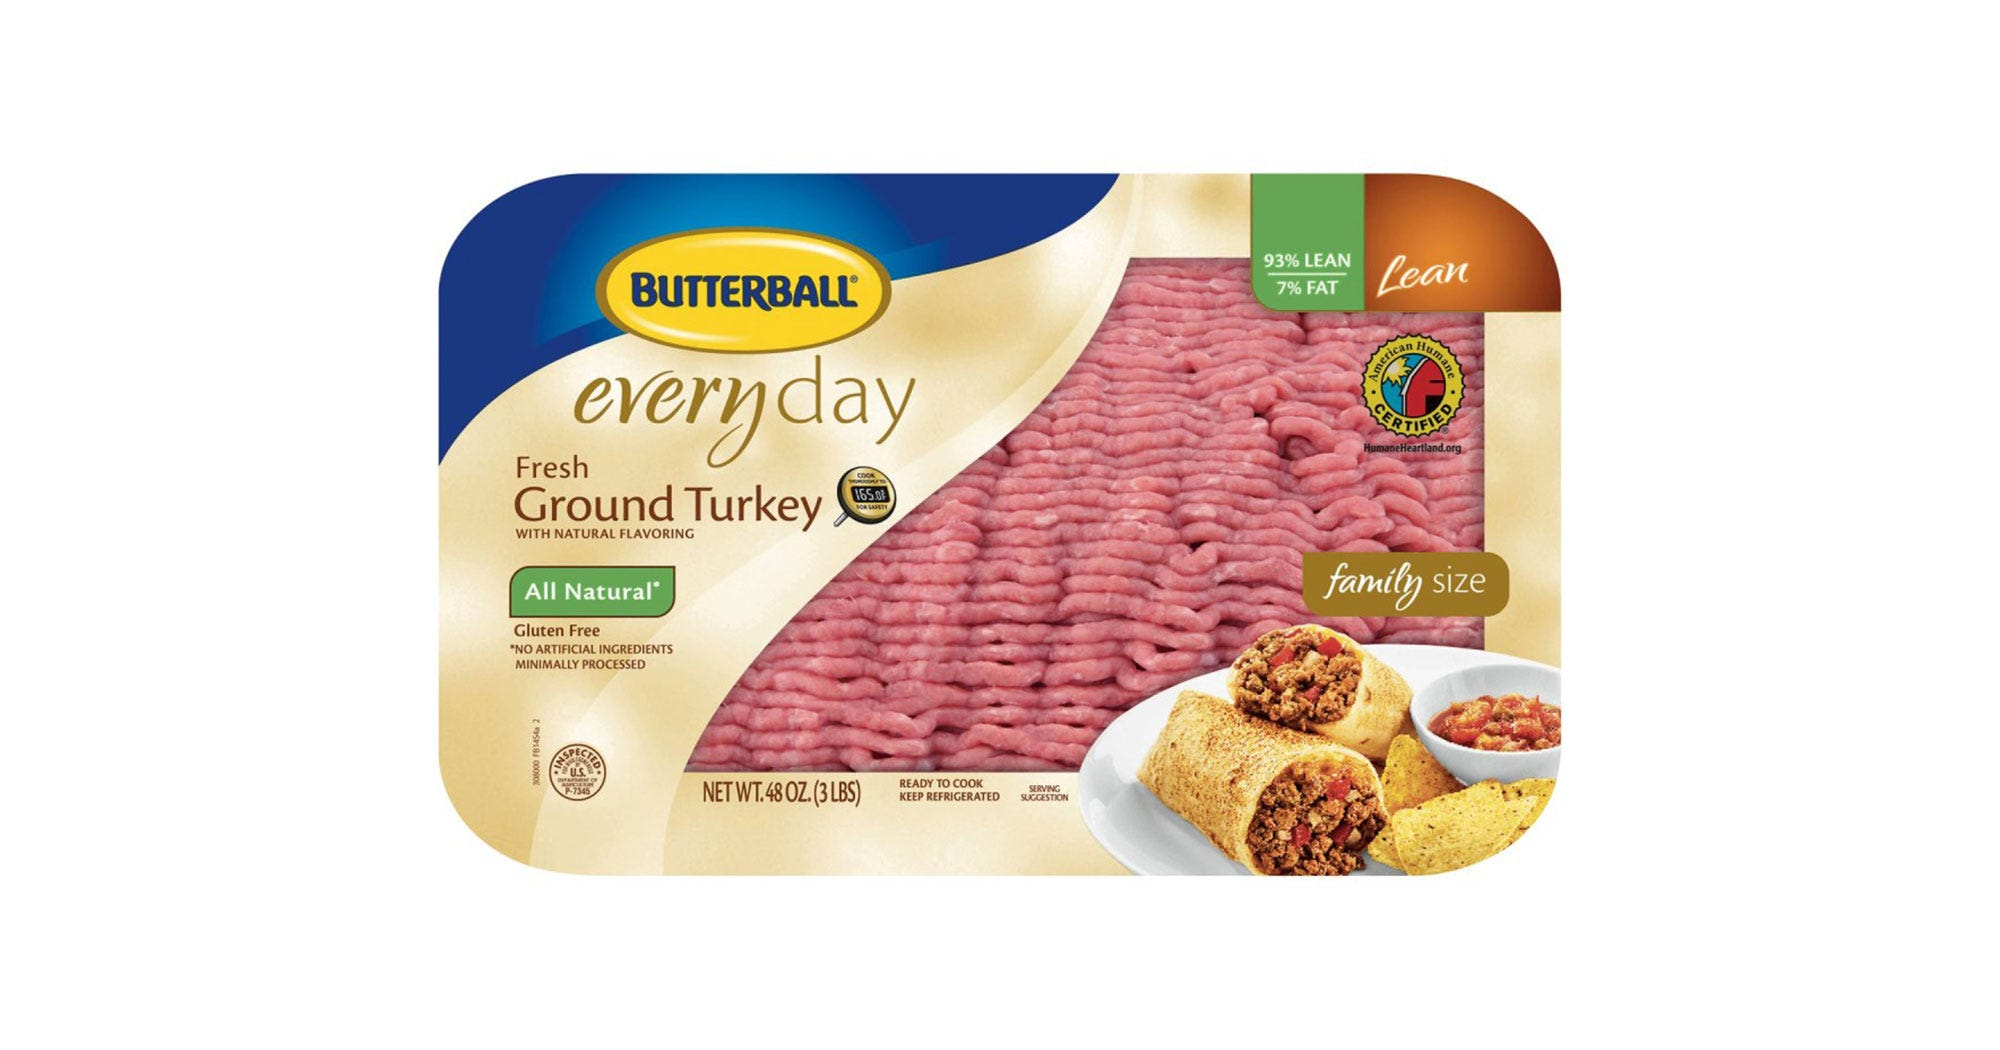 Check Your Freezer — Butterball Is Recalling Ground Turkey Products Due To Salmonella